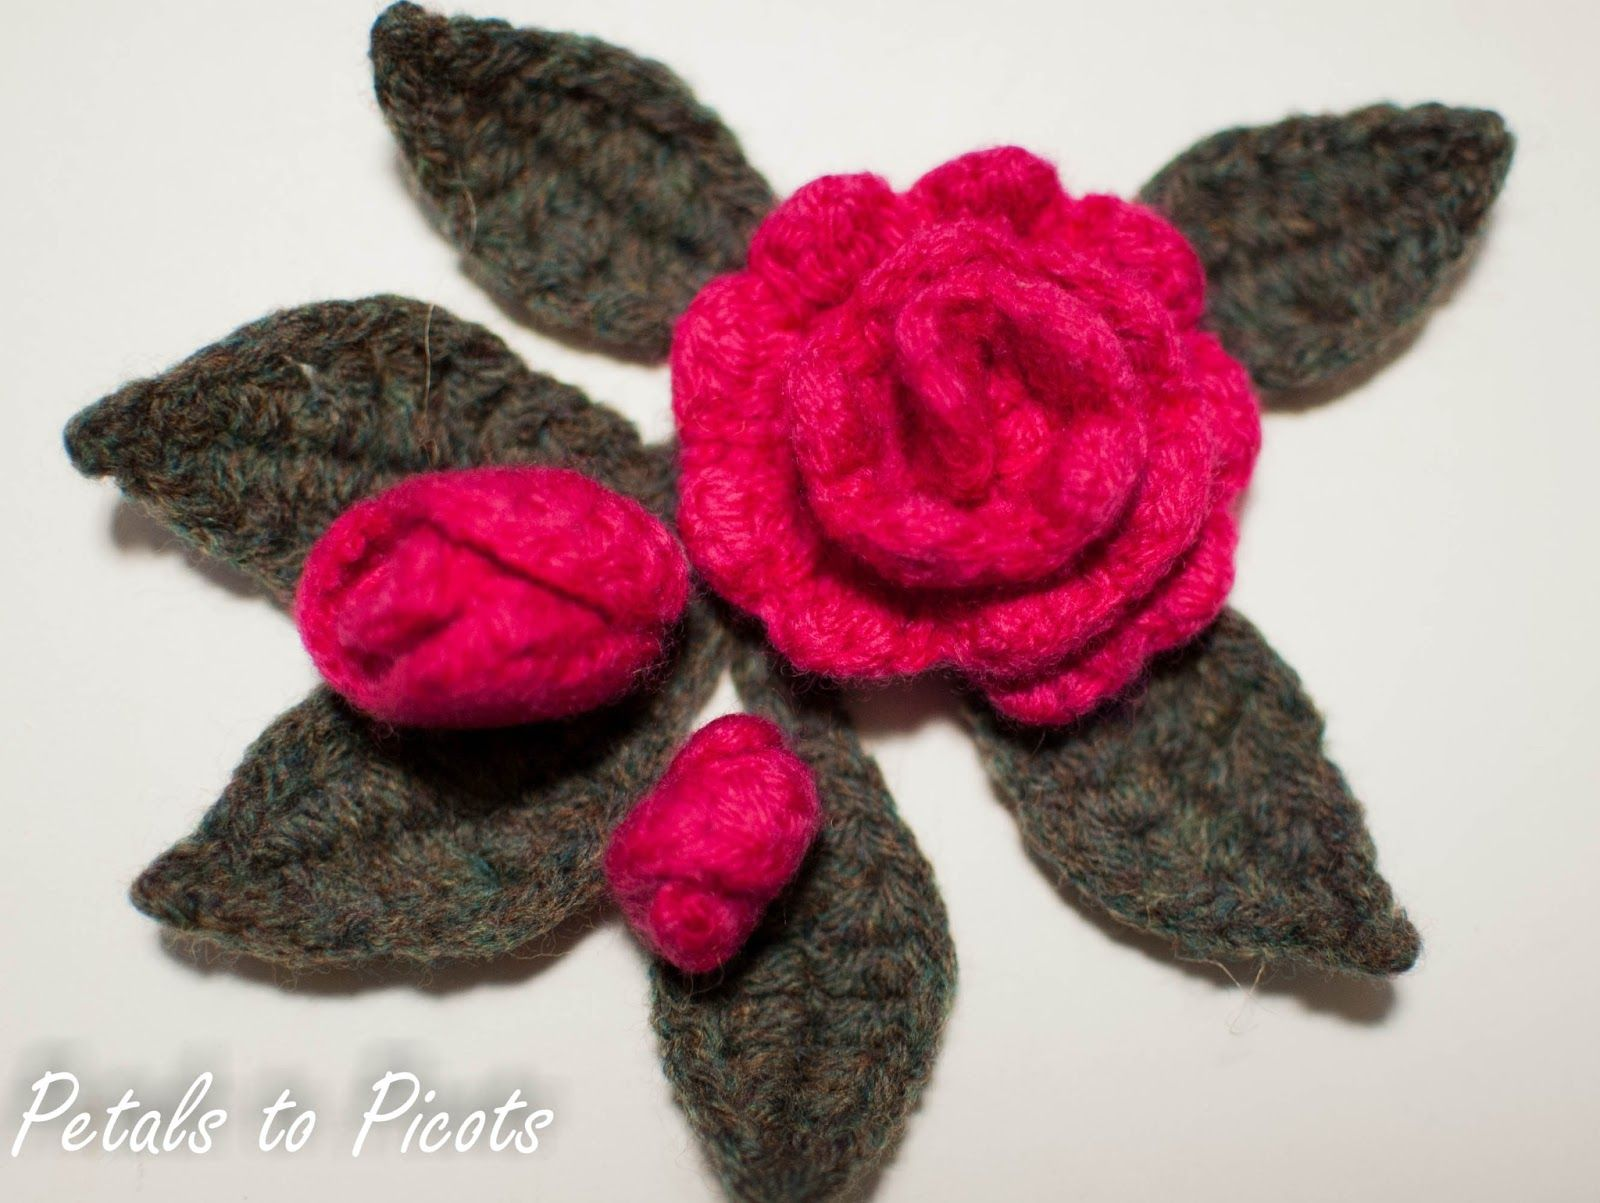 Rosebud and leaf pattern to embellish a burlap wreath rose crochet rosebud and leaf pattern free pattern from petals to picots bankloansurffo Image collections